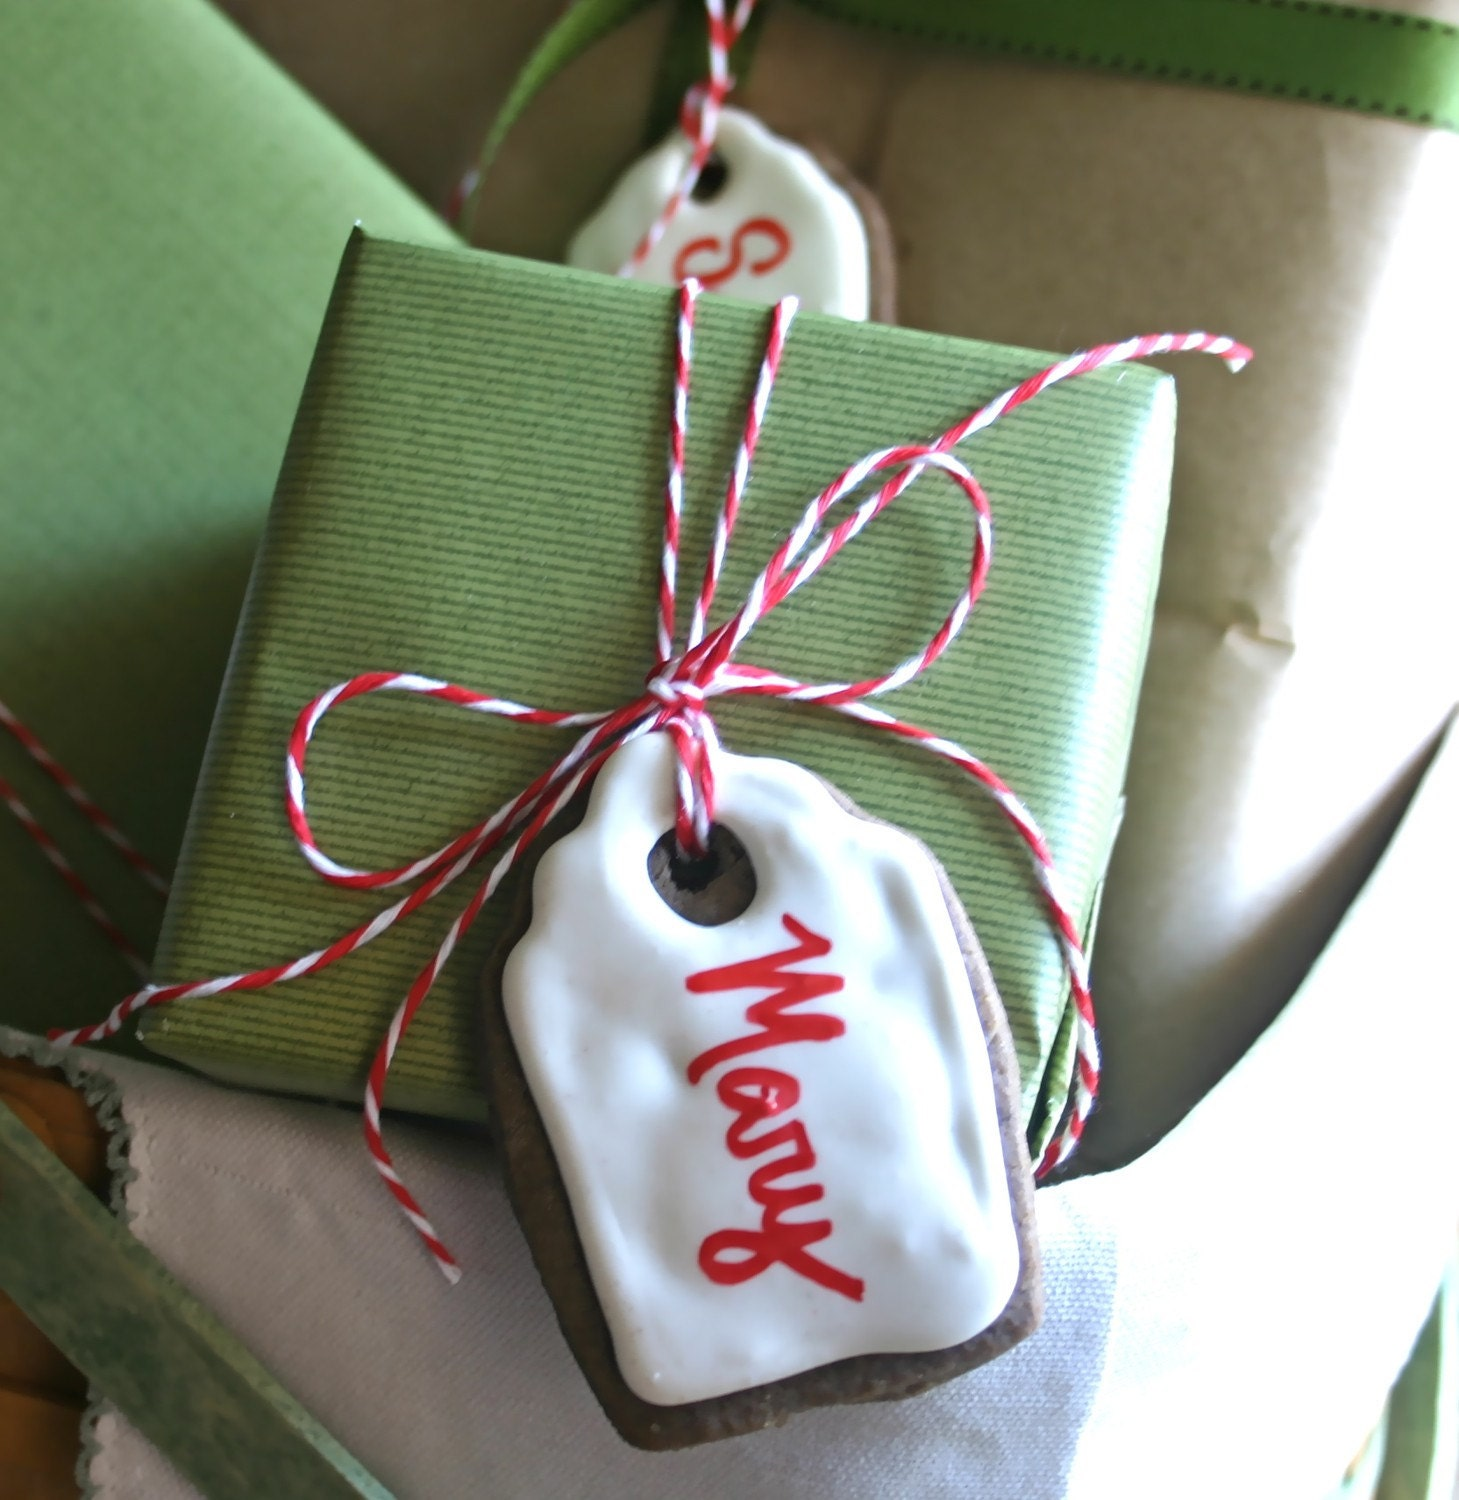 5 Organic Gingerbread Gift Tags with Edible Ink Writer PRE-ORDER BY 1ST WEEK OF DEC.